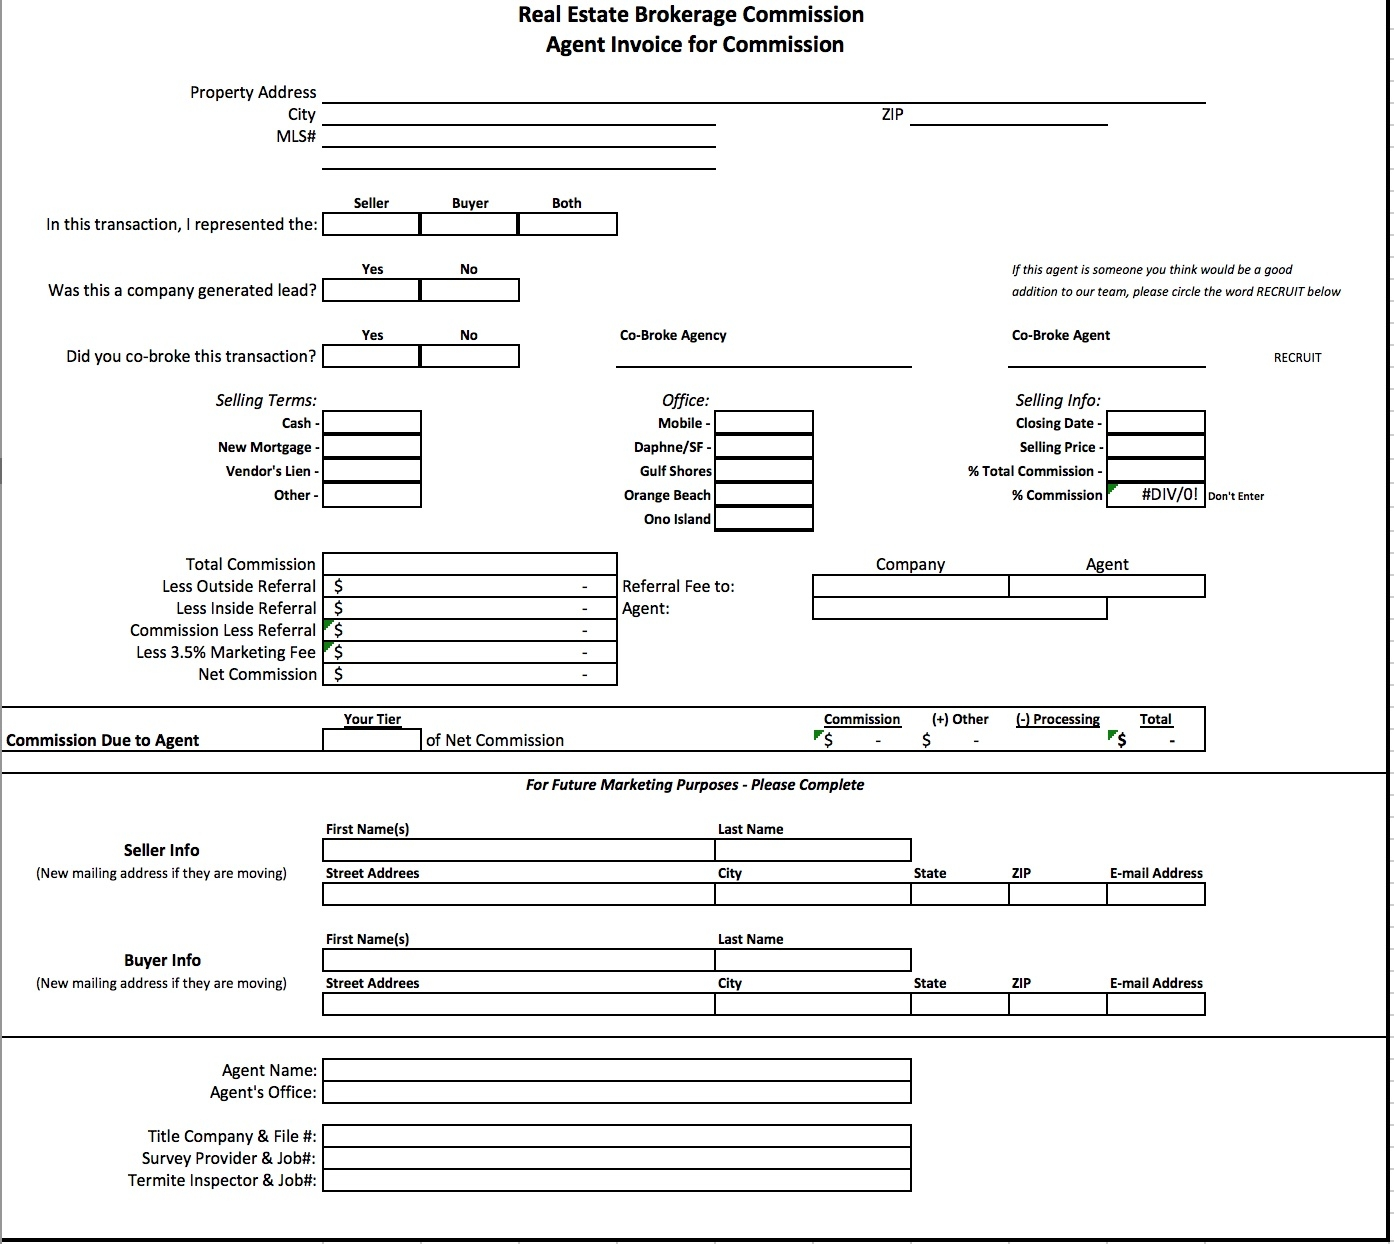 free real estate brokerage commission invoice template excel real estate invoice